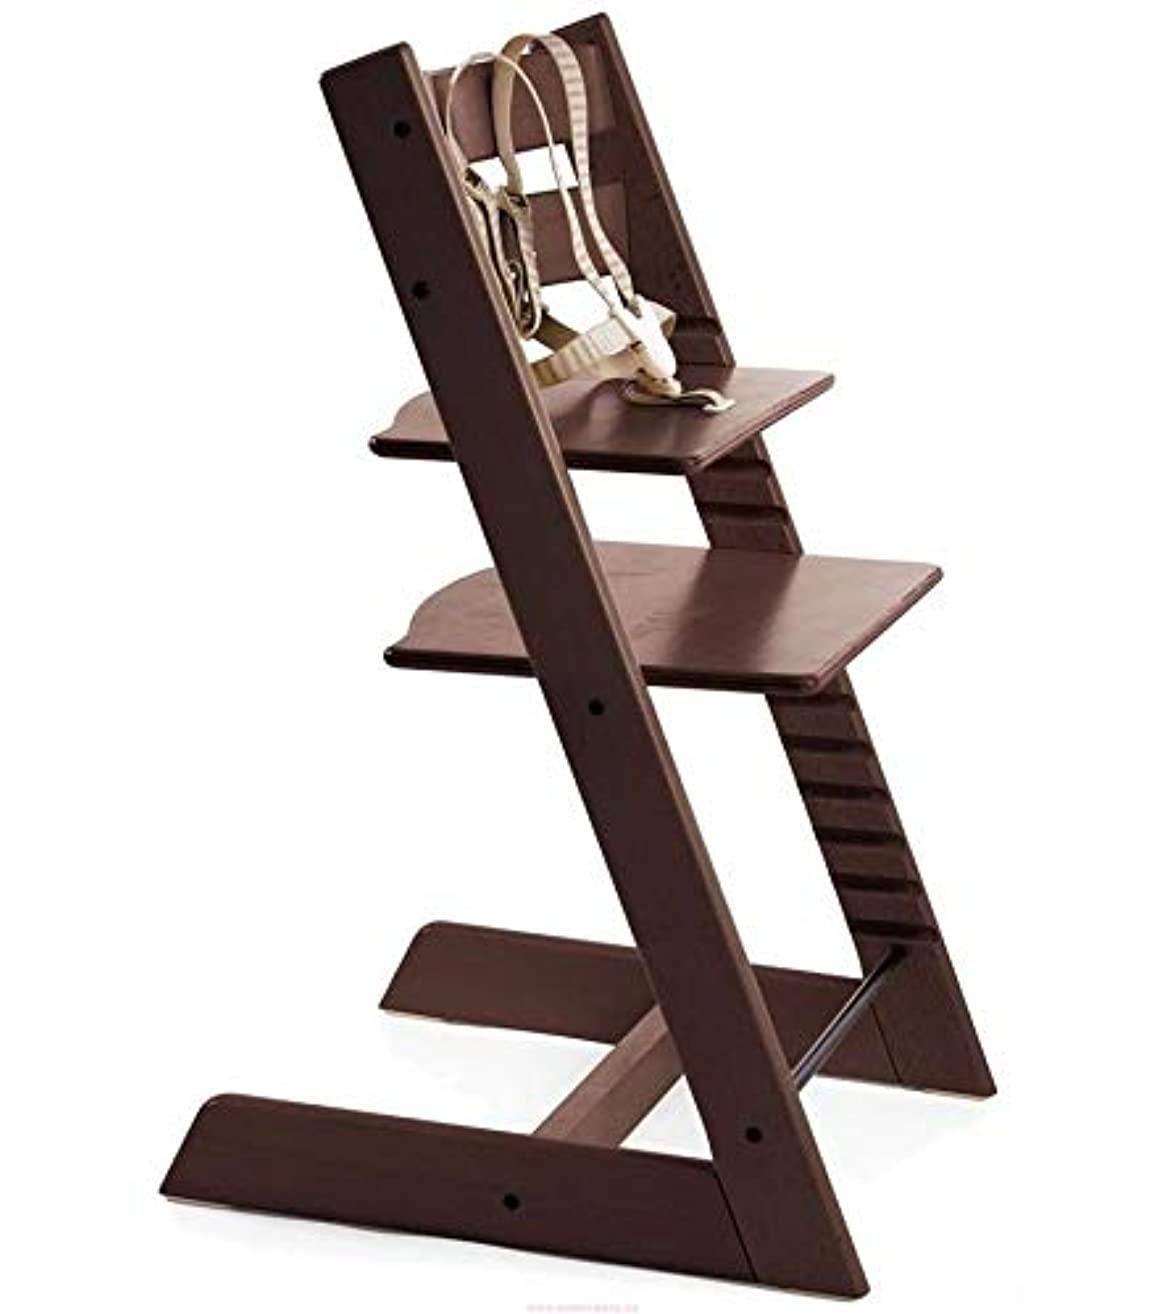 Wooden feeding chair, wood chair for kids Tripp Trapp, Baby High Chair, Foldable Multi-Functional Baby Feeding Chair, Children's Table Toy Chair, Height Adjustable Family and Commercial Restaurant